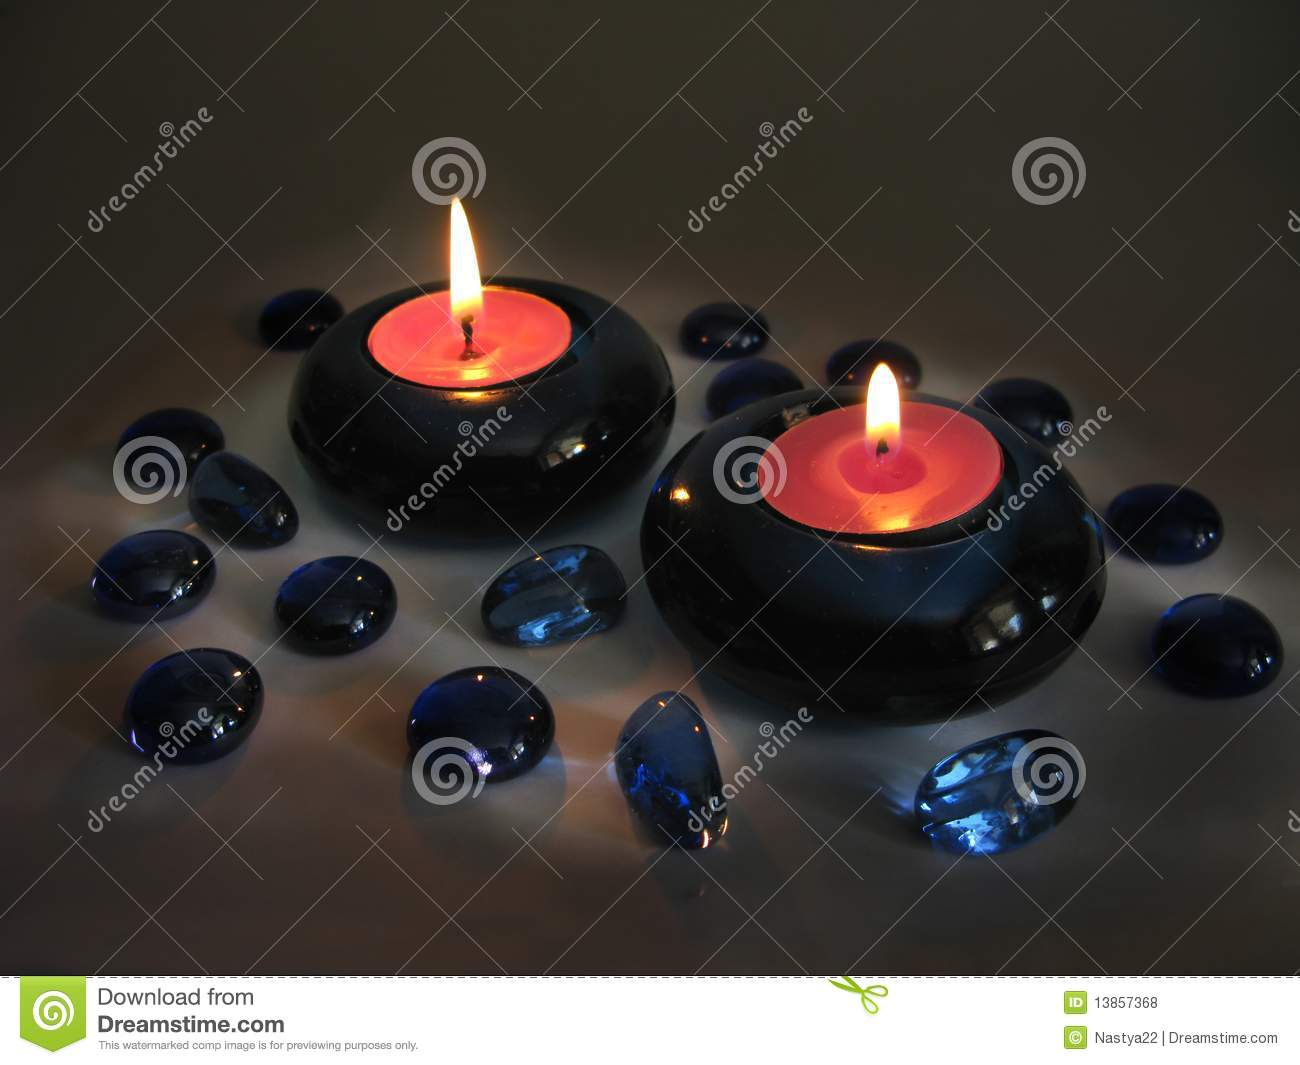 Spa scented aroma candle royalty free stock photos image for Spa smelling candles